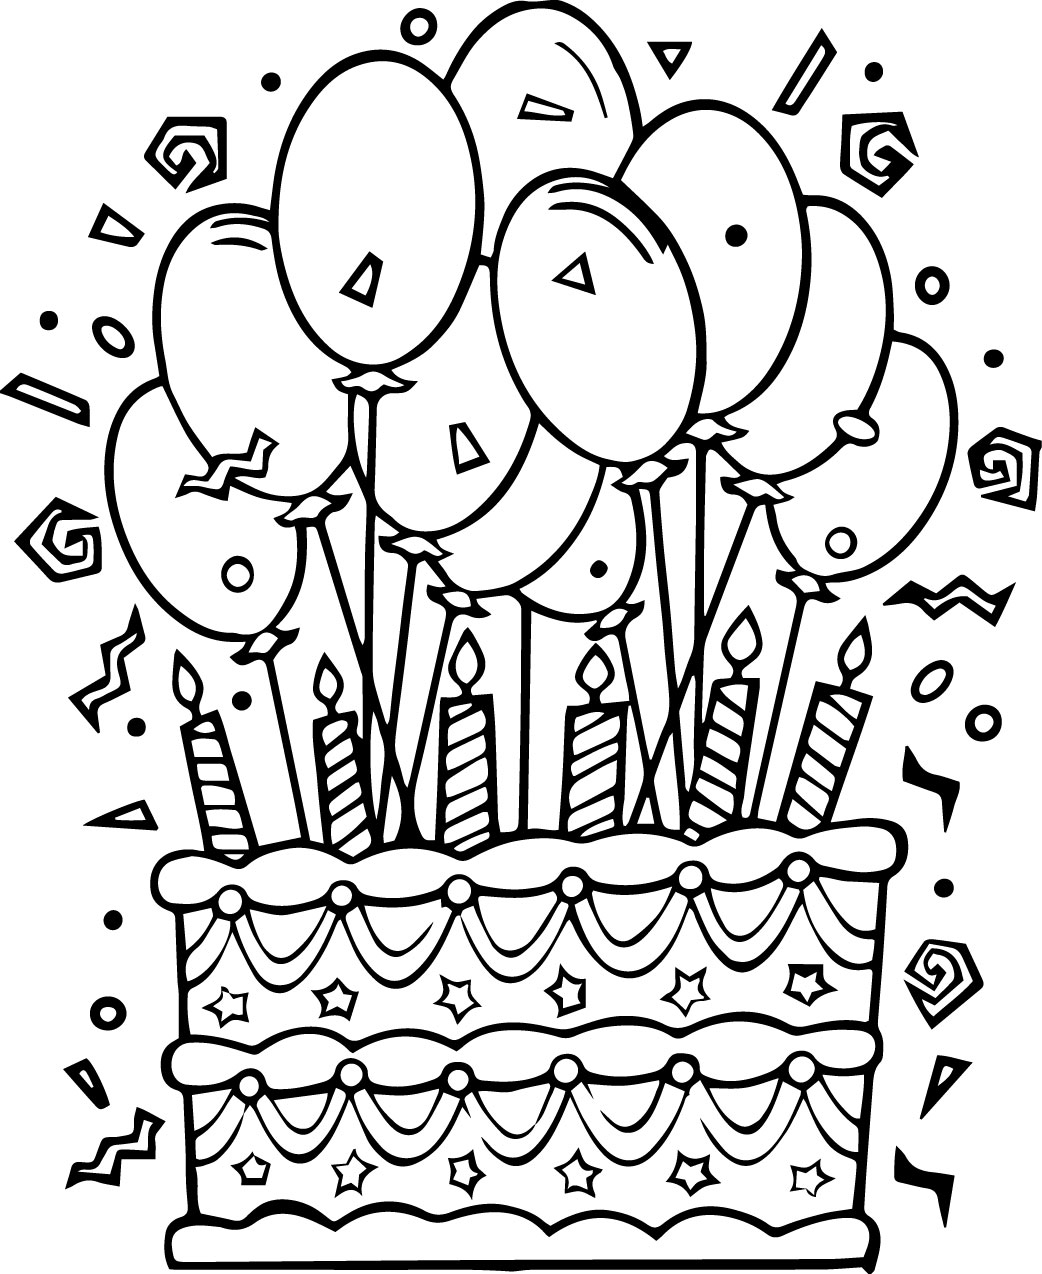 coloring cake pages slice of cake drawing at getdrawings free download coloring cake pages